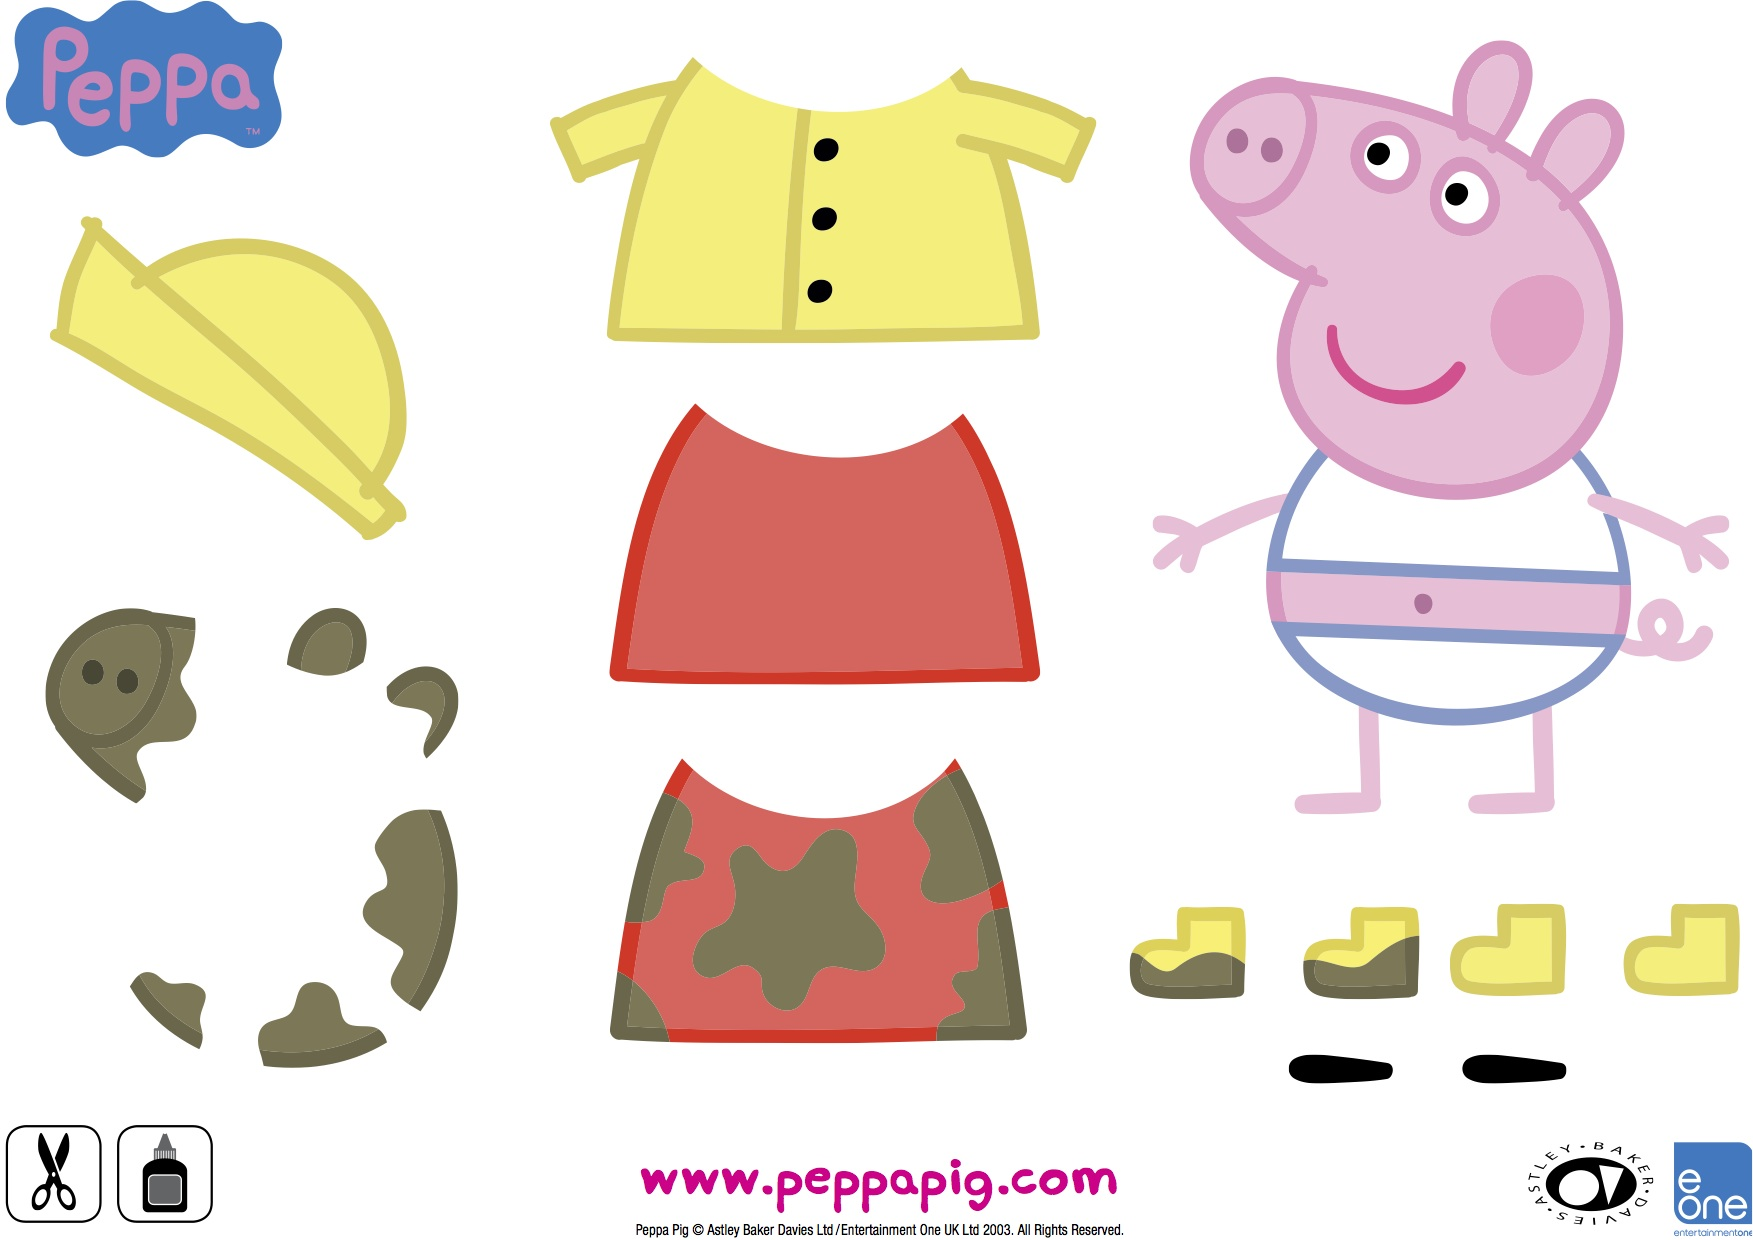 Rainy Day Activities: Download These FREE Peppa Pig Activity Sheets   Mumu0027s  Lounge